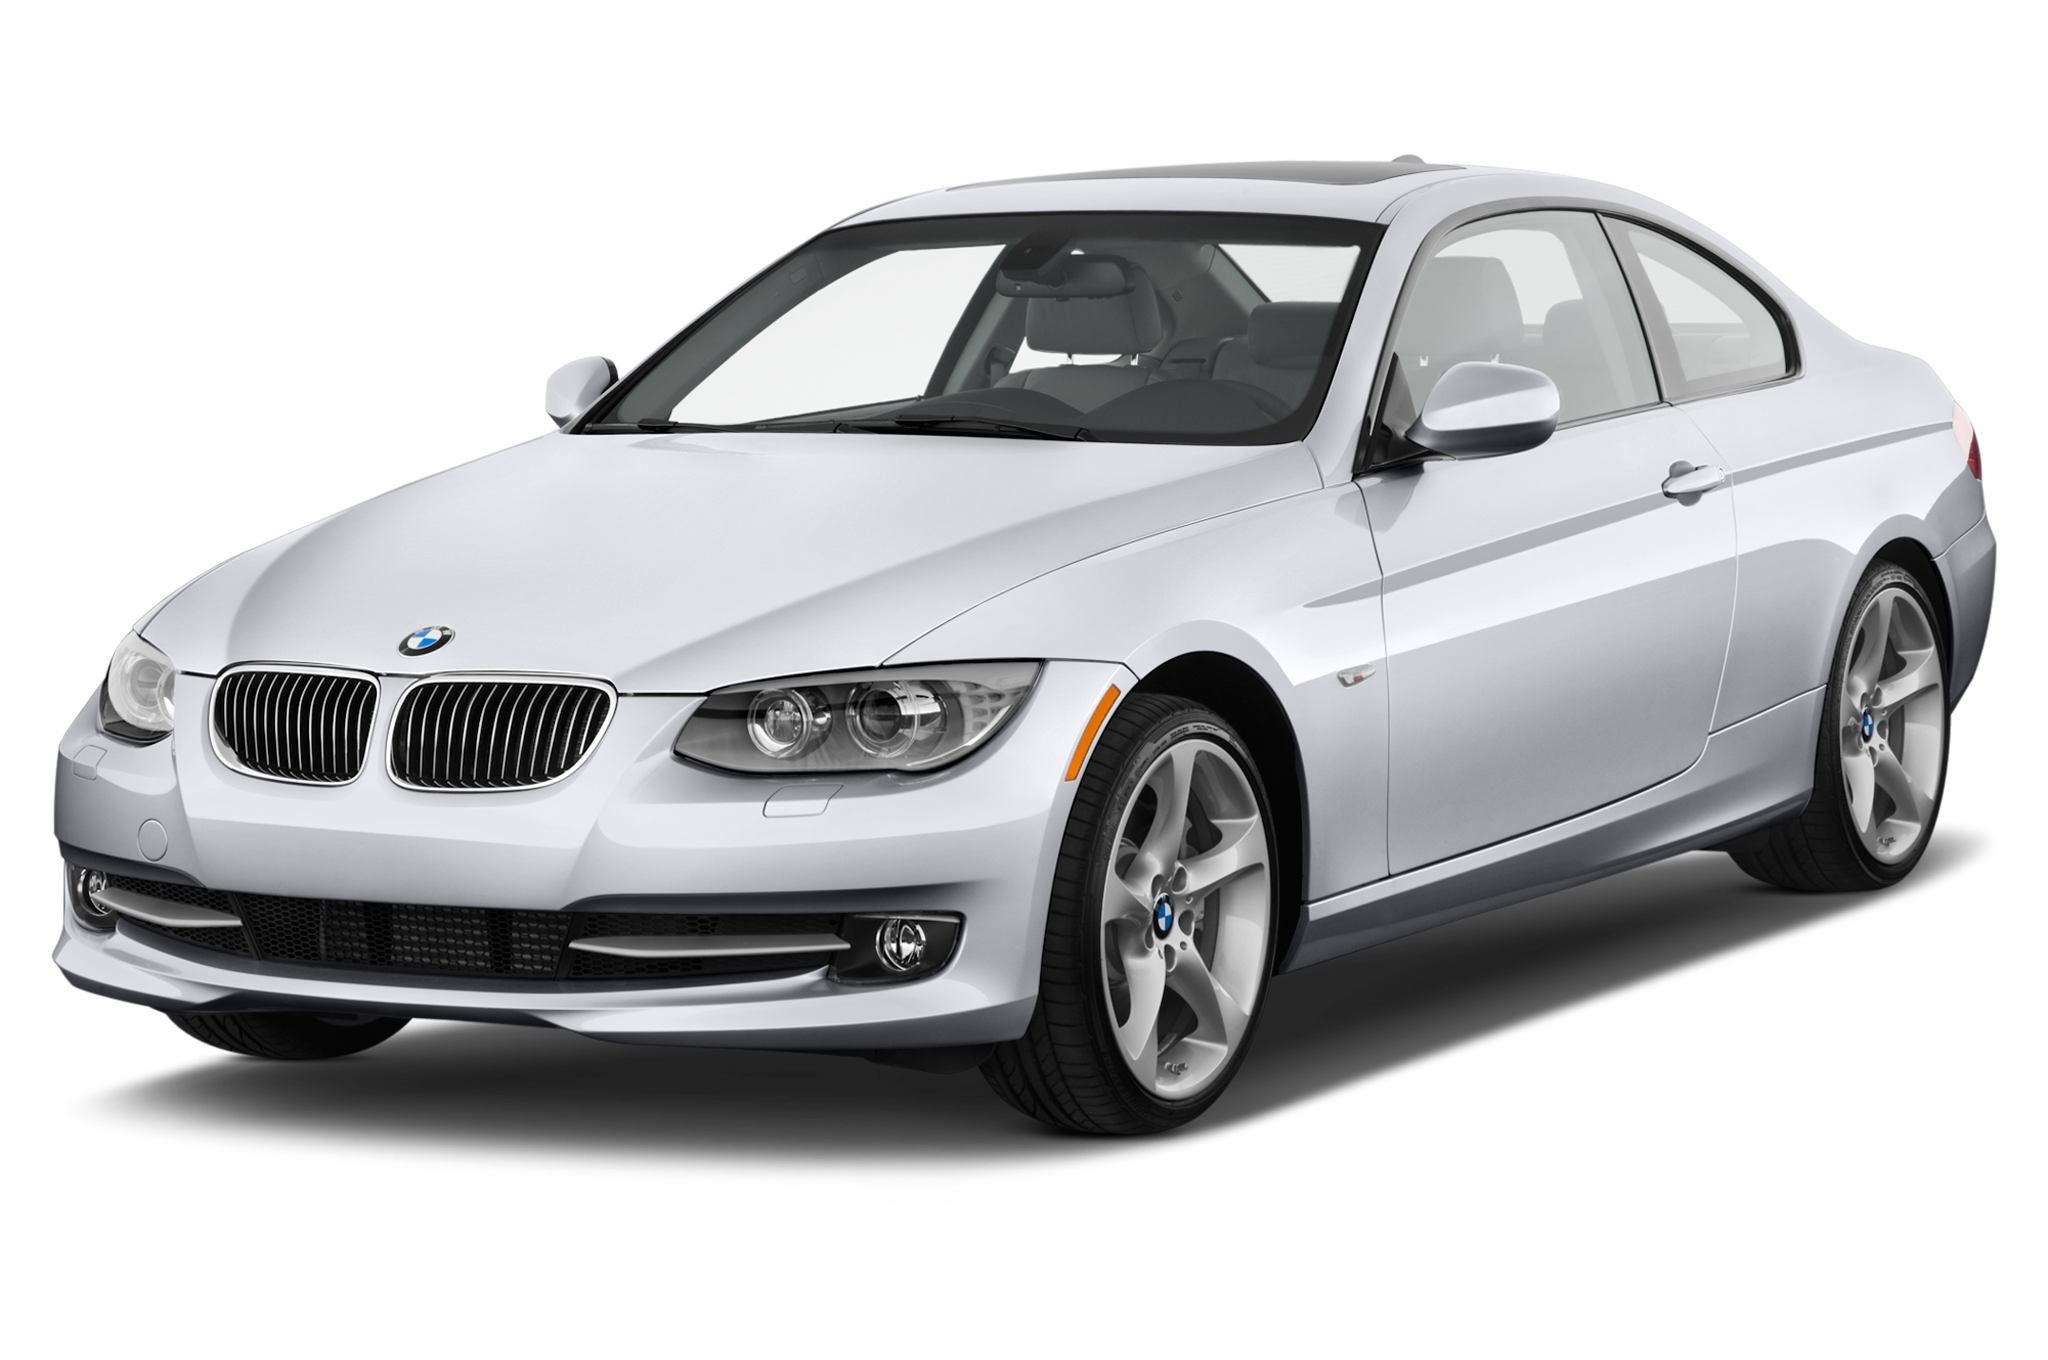 bmw 335is details leaked 322 hp 369 lb ft torque. Black Bedroom Furniture Sets. Home Design Ideas